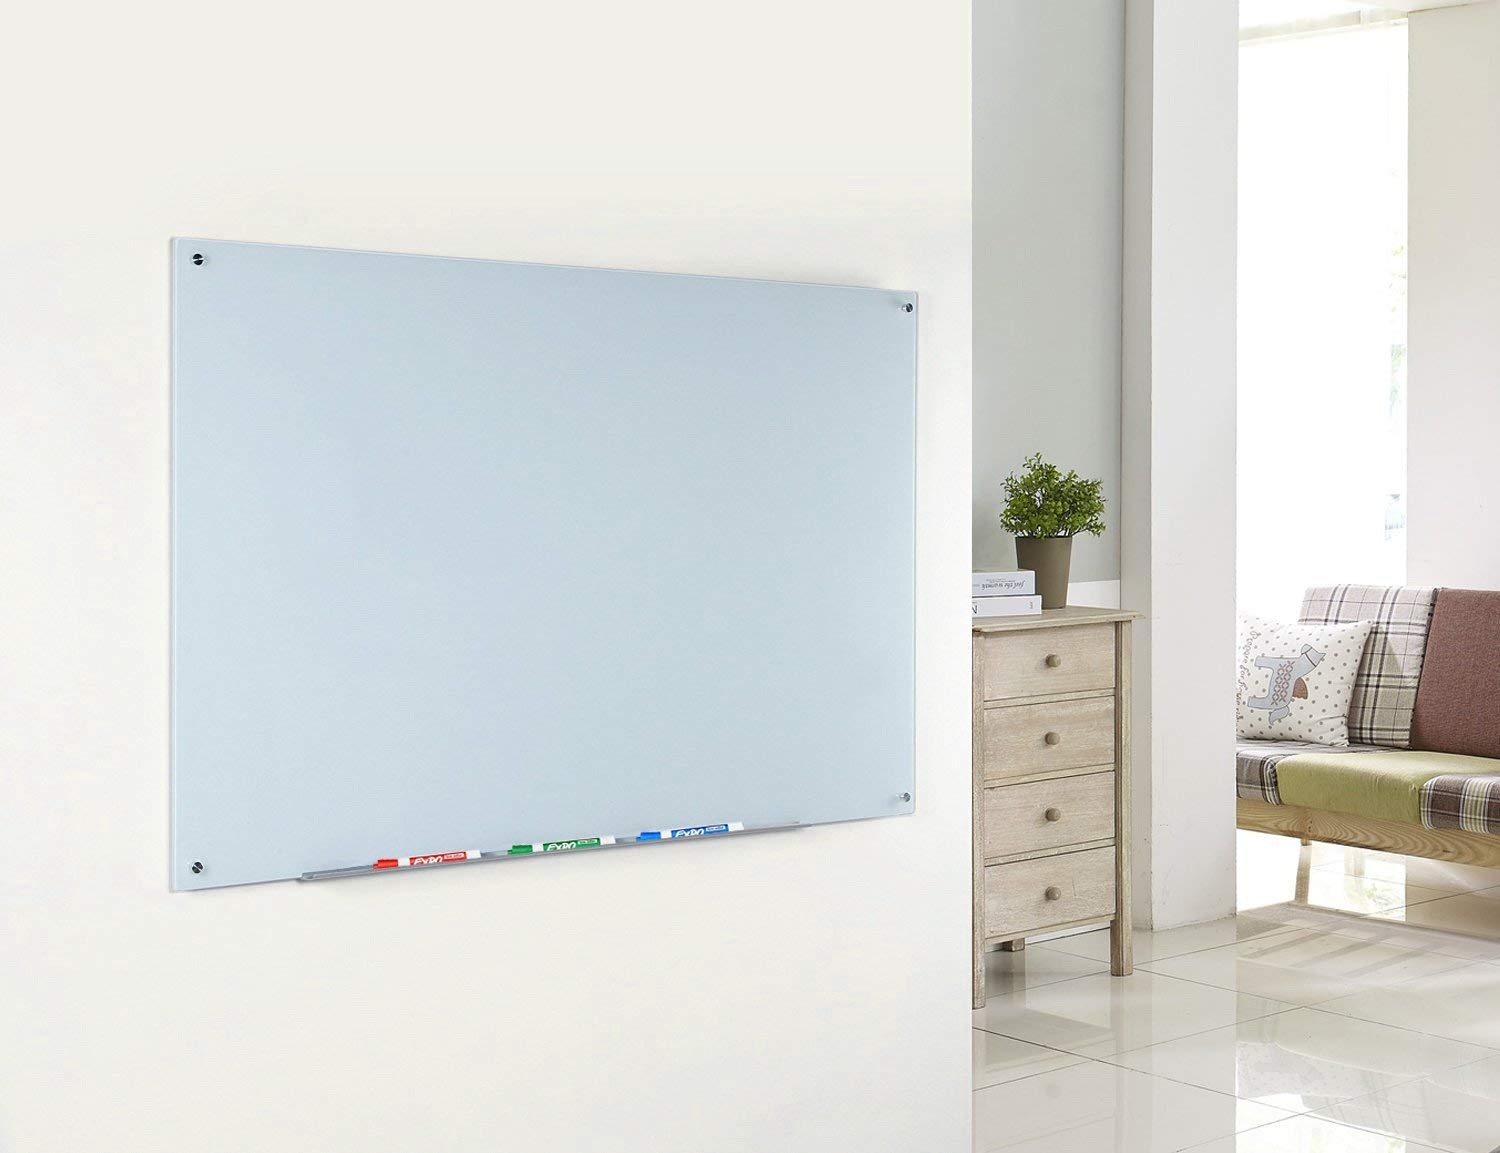 Magnetic Glass Dry-Erase Board Set includes Board, 2 Magnets, and Aluminum Marker Tray